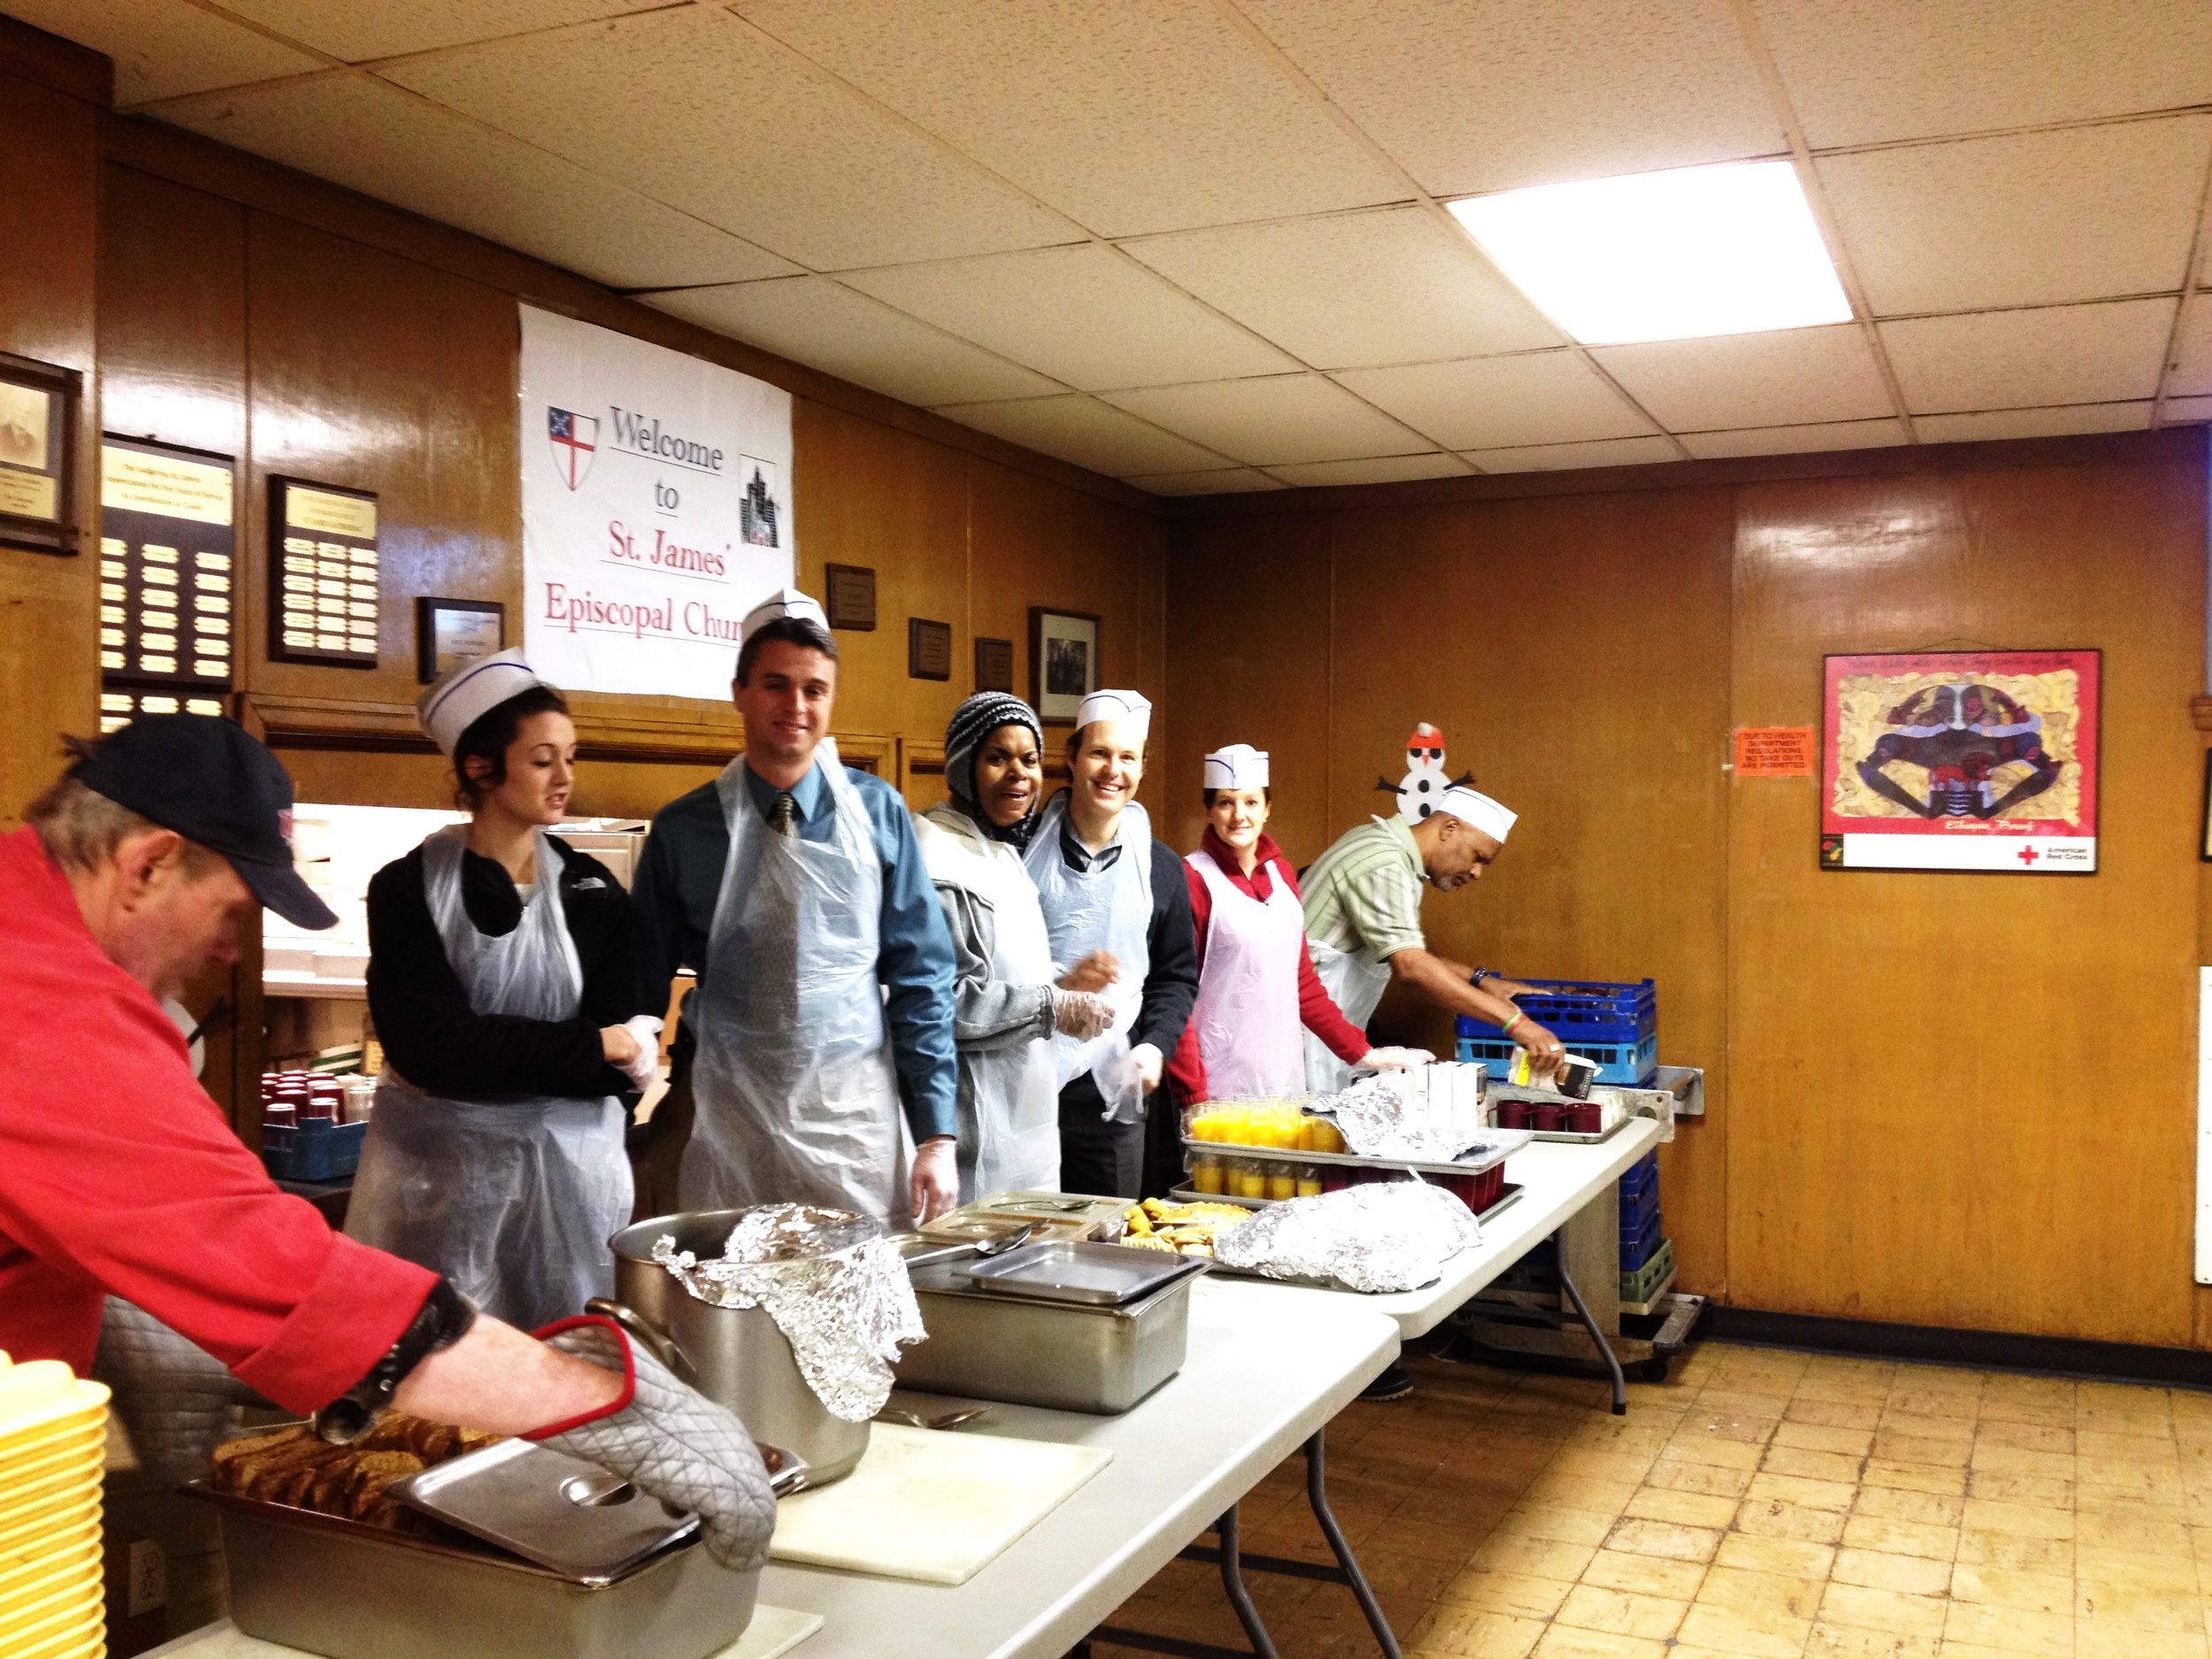 Stephanie (center) and fellow volunteers in the serving line